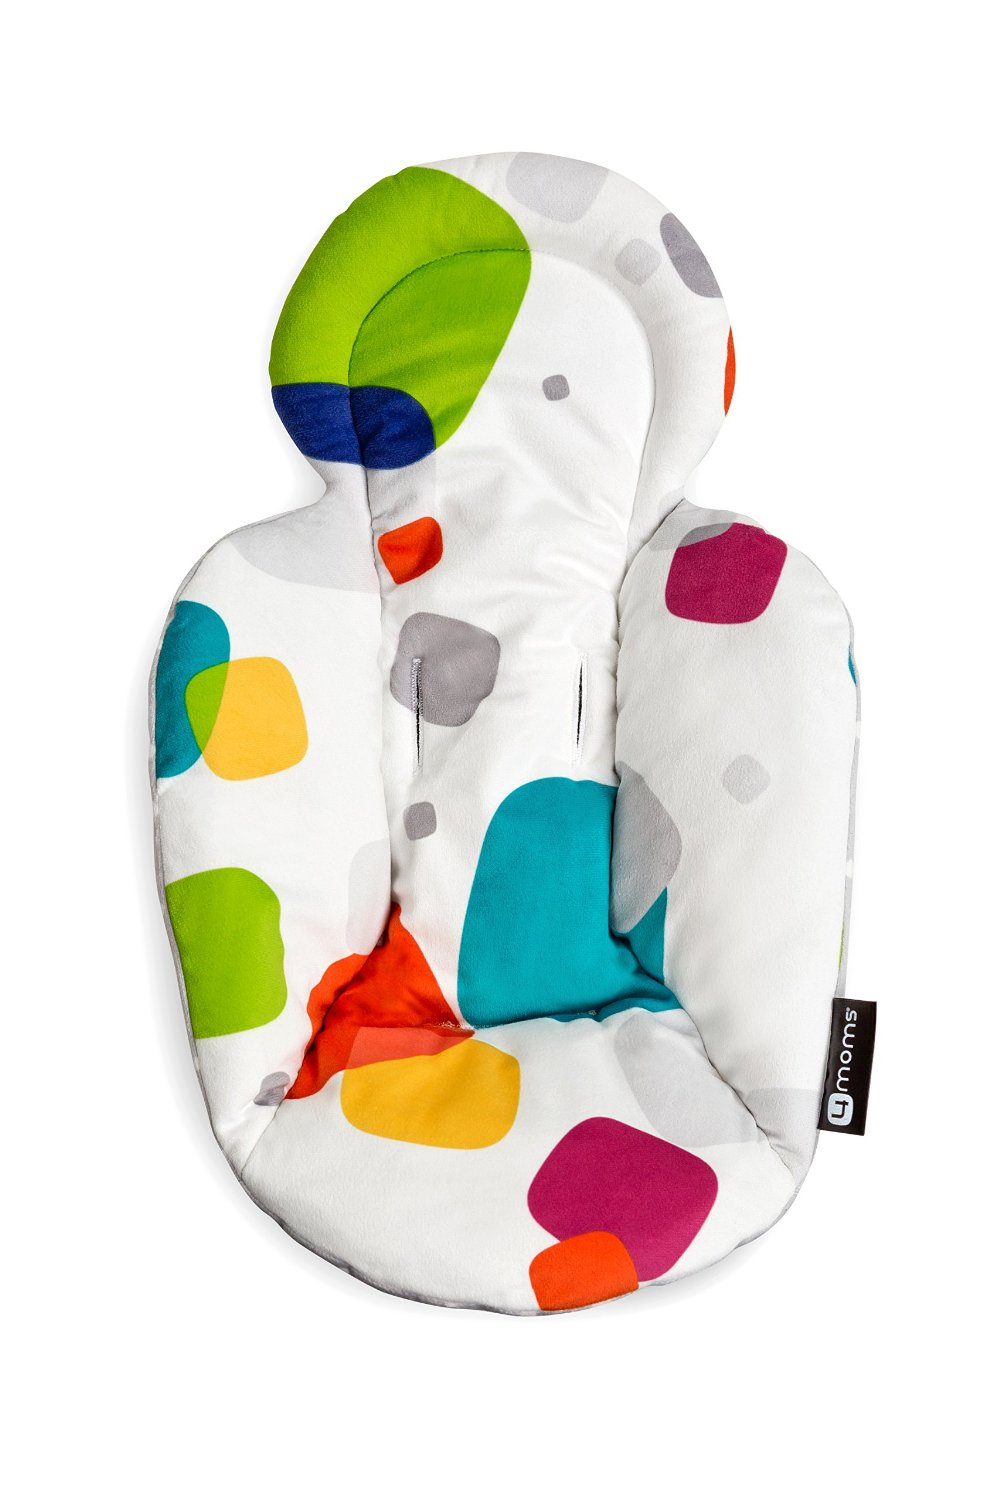 , Infant Seat and Swing Insert, Multi Polka Dot Plush, Seat Plush and Swing Dot Infant Insert MultiPolka By... by 4moms